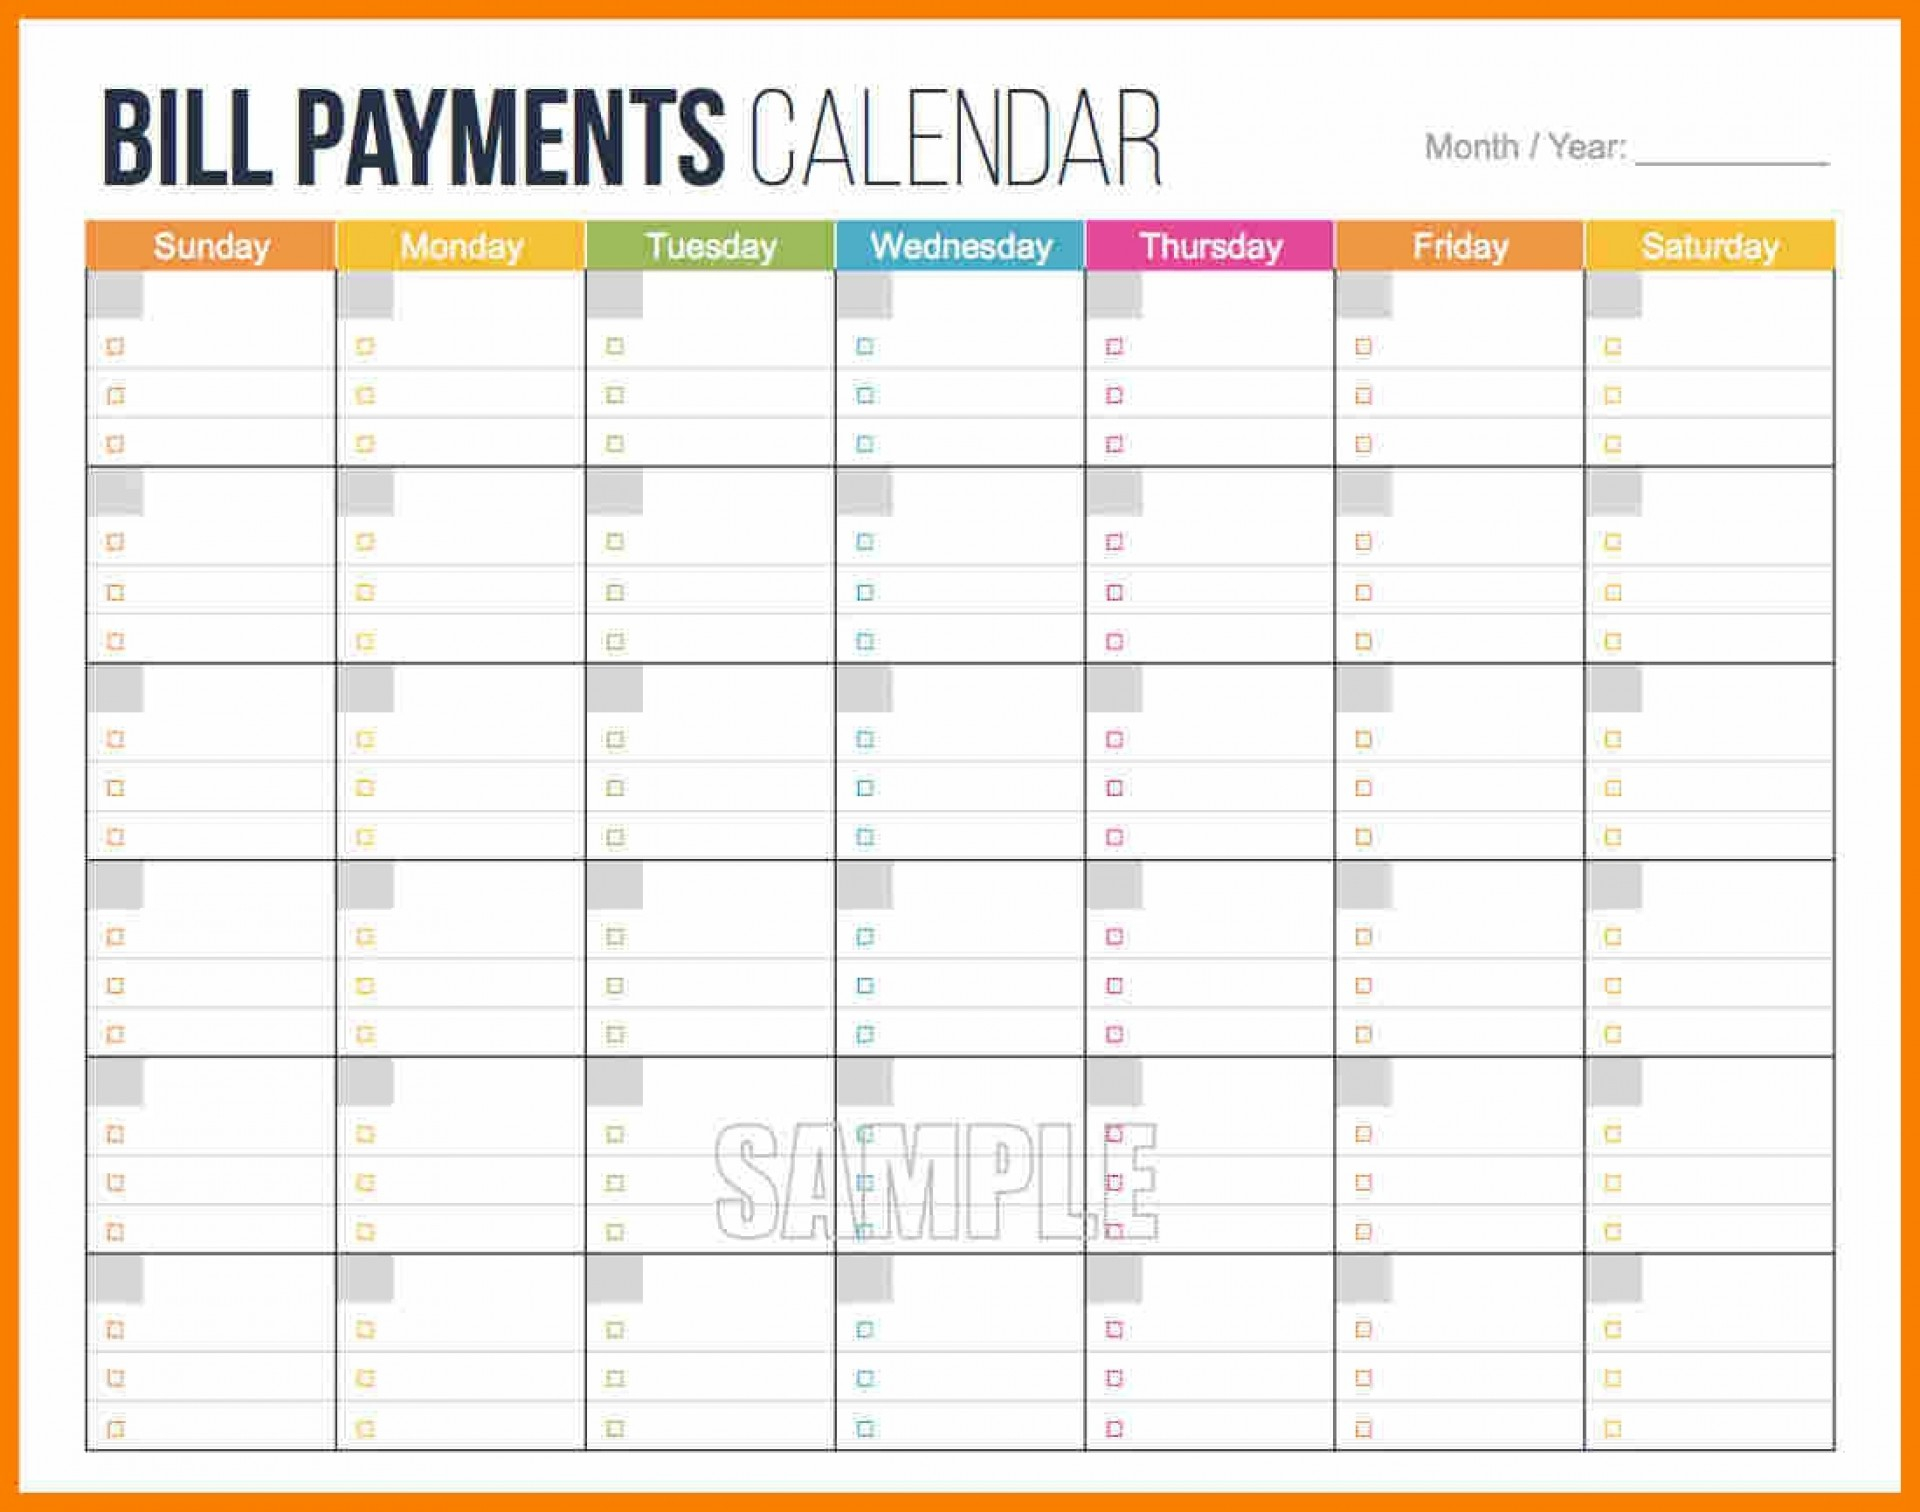 015 Bill Payment Schedule Template Mockup Rare Ideas Monthly within Free Printable Bill Payment Schedule